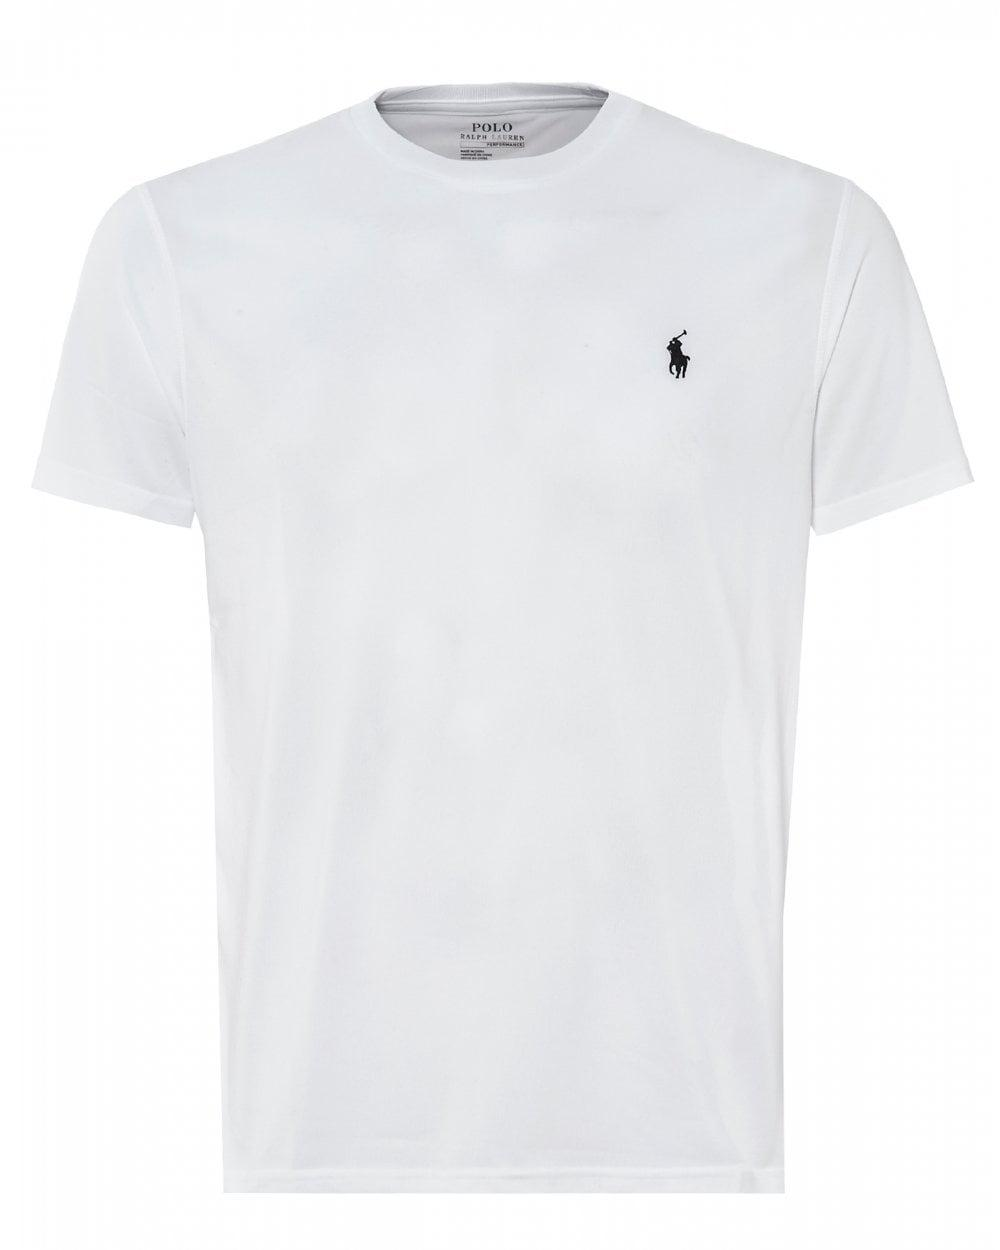 afb7ffb12 Lyst - Ralph Lauren Polo Player T-shirt